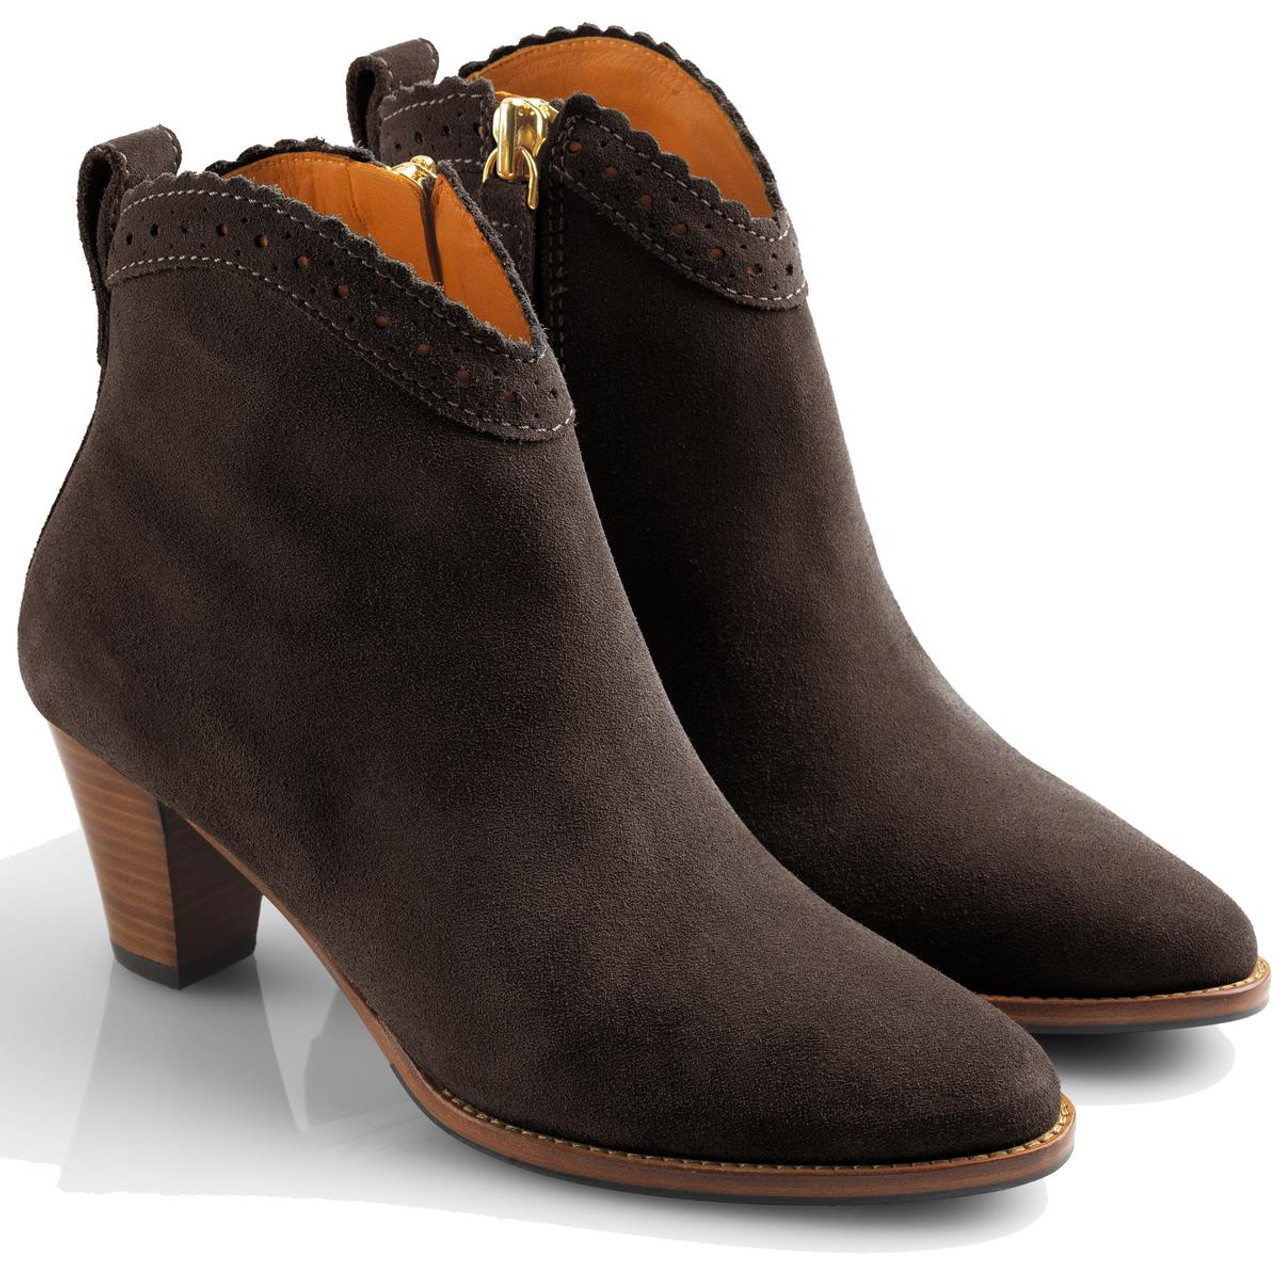 Chocolate Fairfax & Favor Womens Regina Ankle Boots